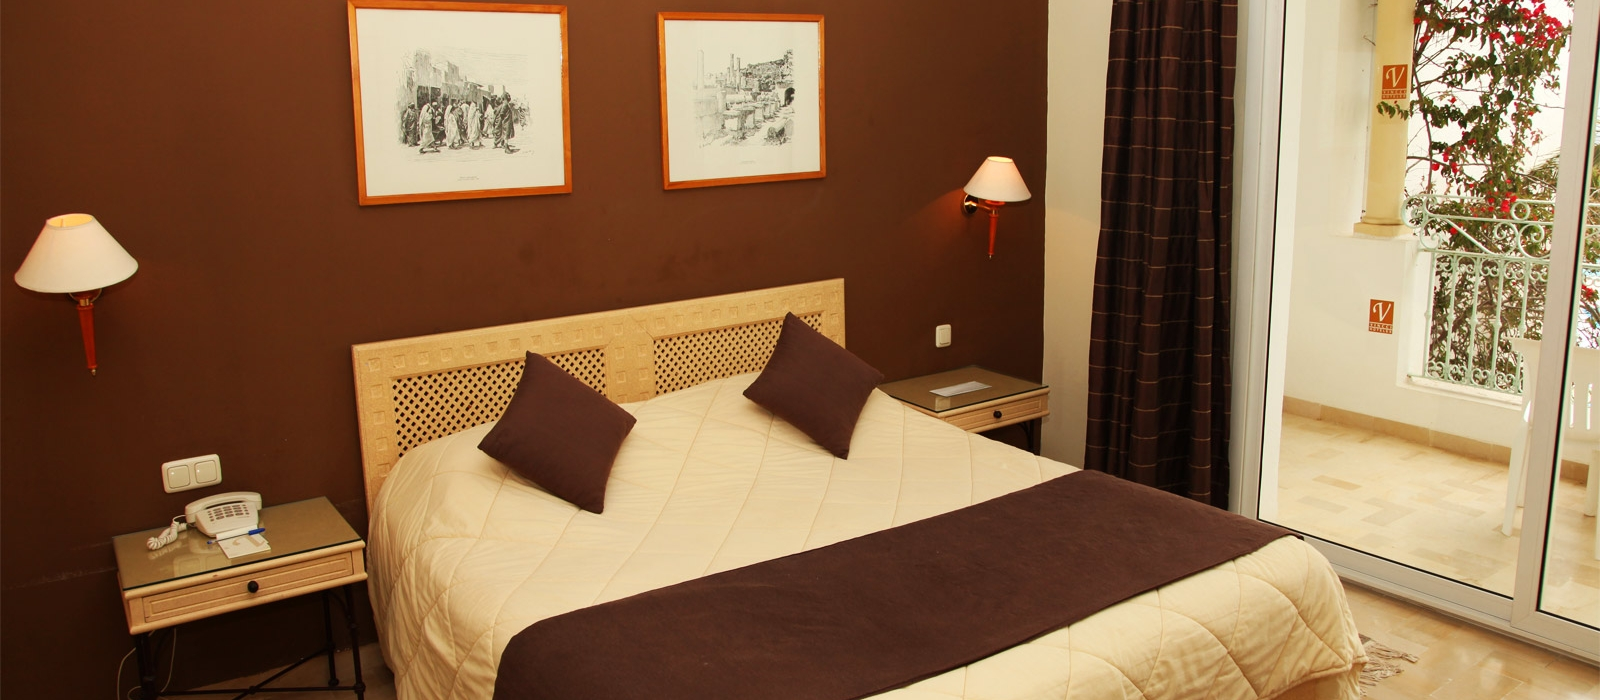 Rooms Hotel Hammamet Flora Park - Vincci Hotels - Double Room